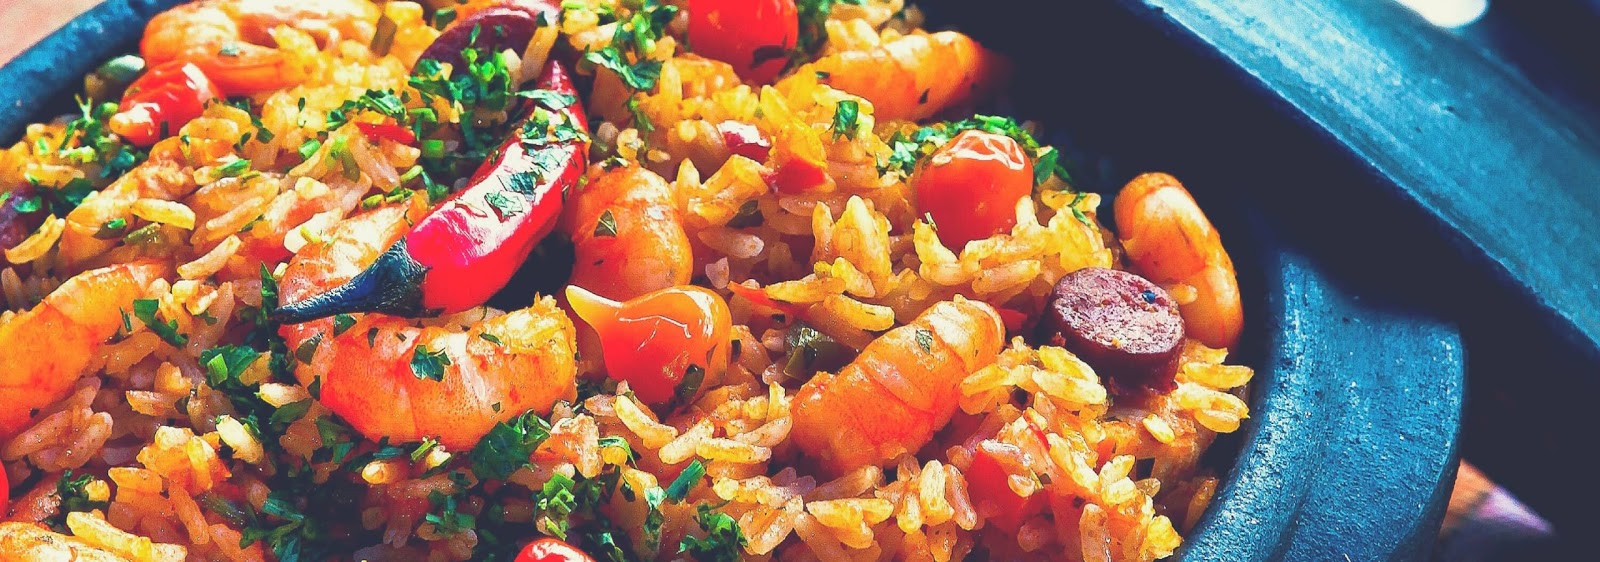 a pan filled with prawn paella. Pink prawns, red peppers, white rice.